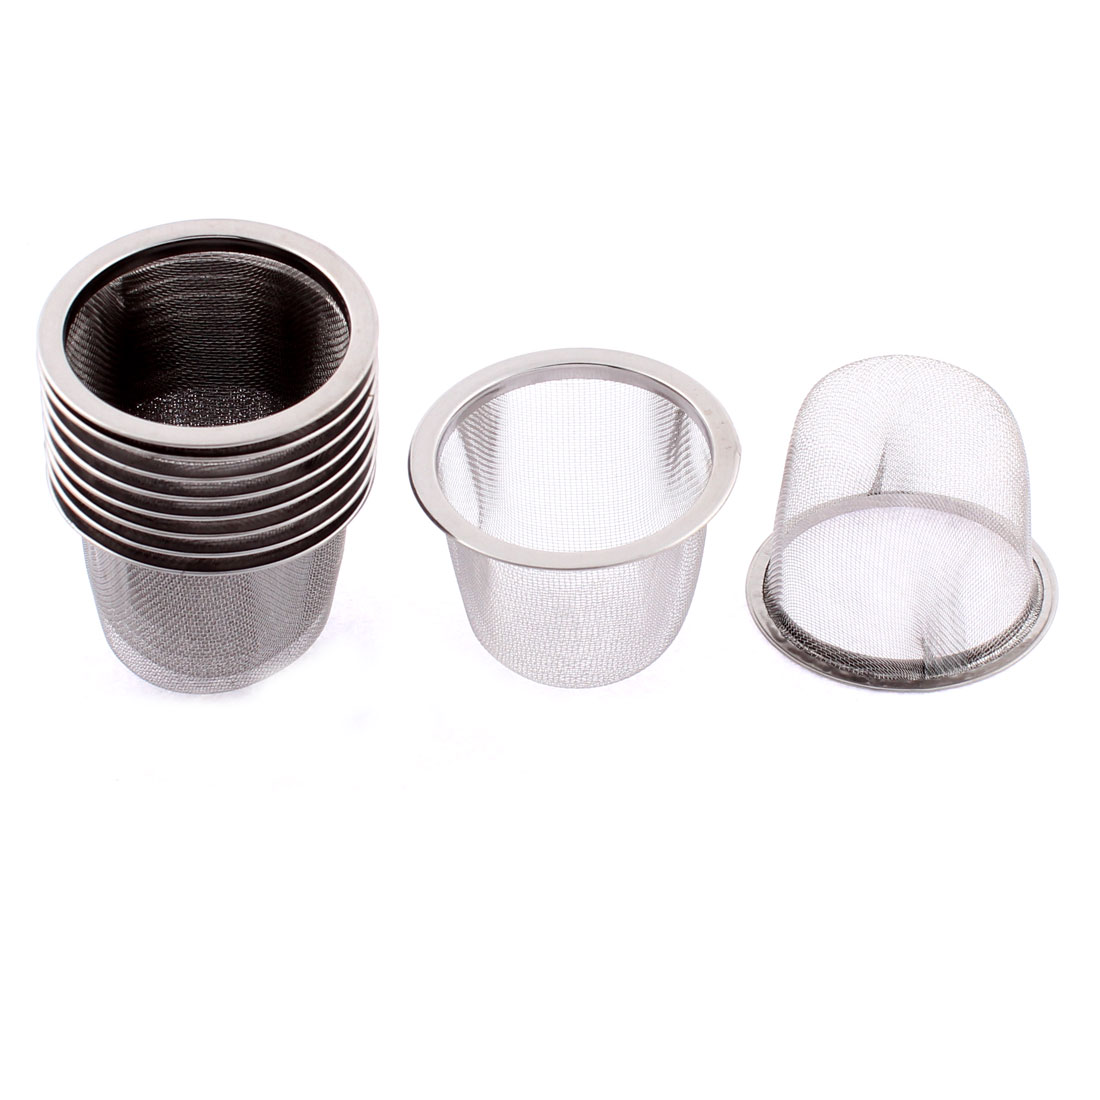 Stainless Steel Wire Mesh Tea Infuser Strainer Filter 60mm Dia 10 Pcs